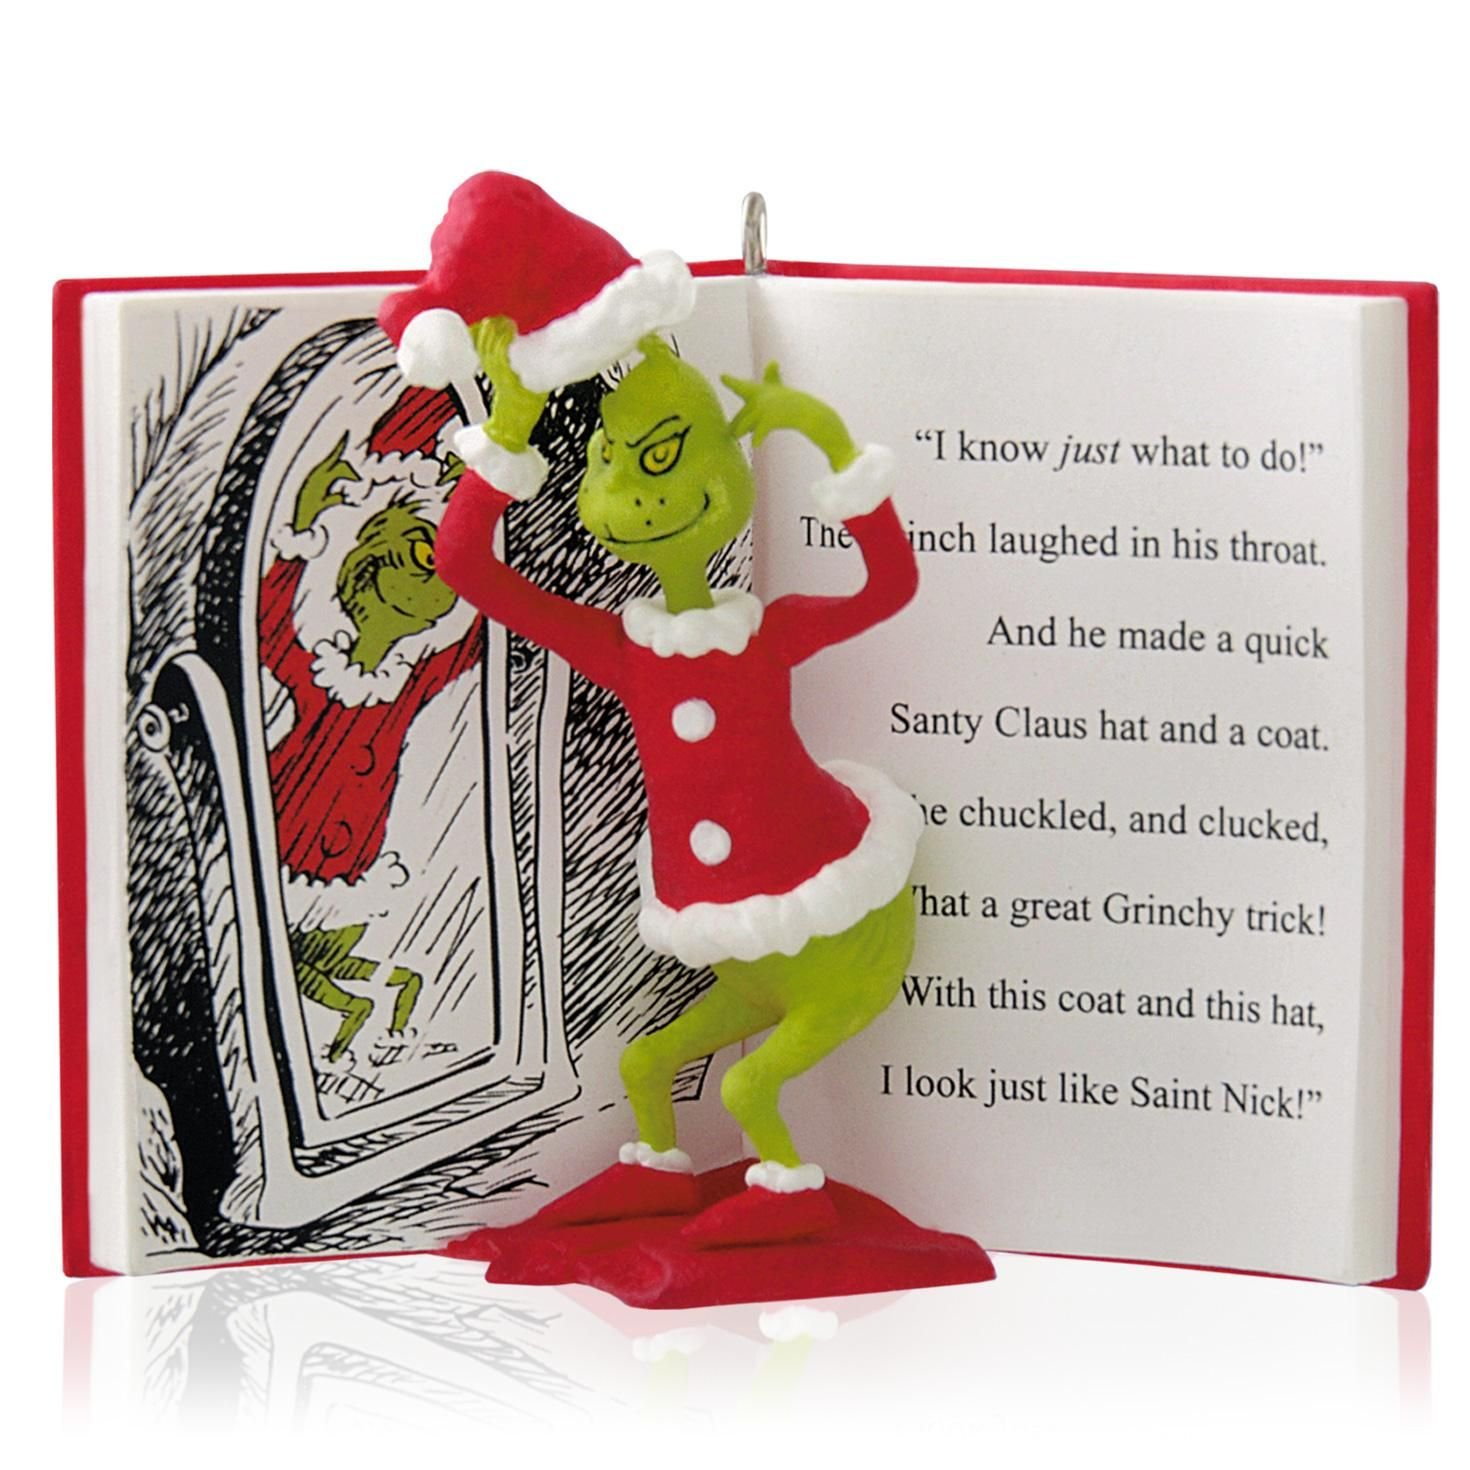 amazoncom hallmark 2014 the grinch in disguise ornament home kitchen - Grinch Christmas Decorations Amazon